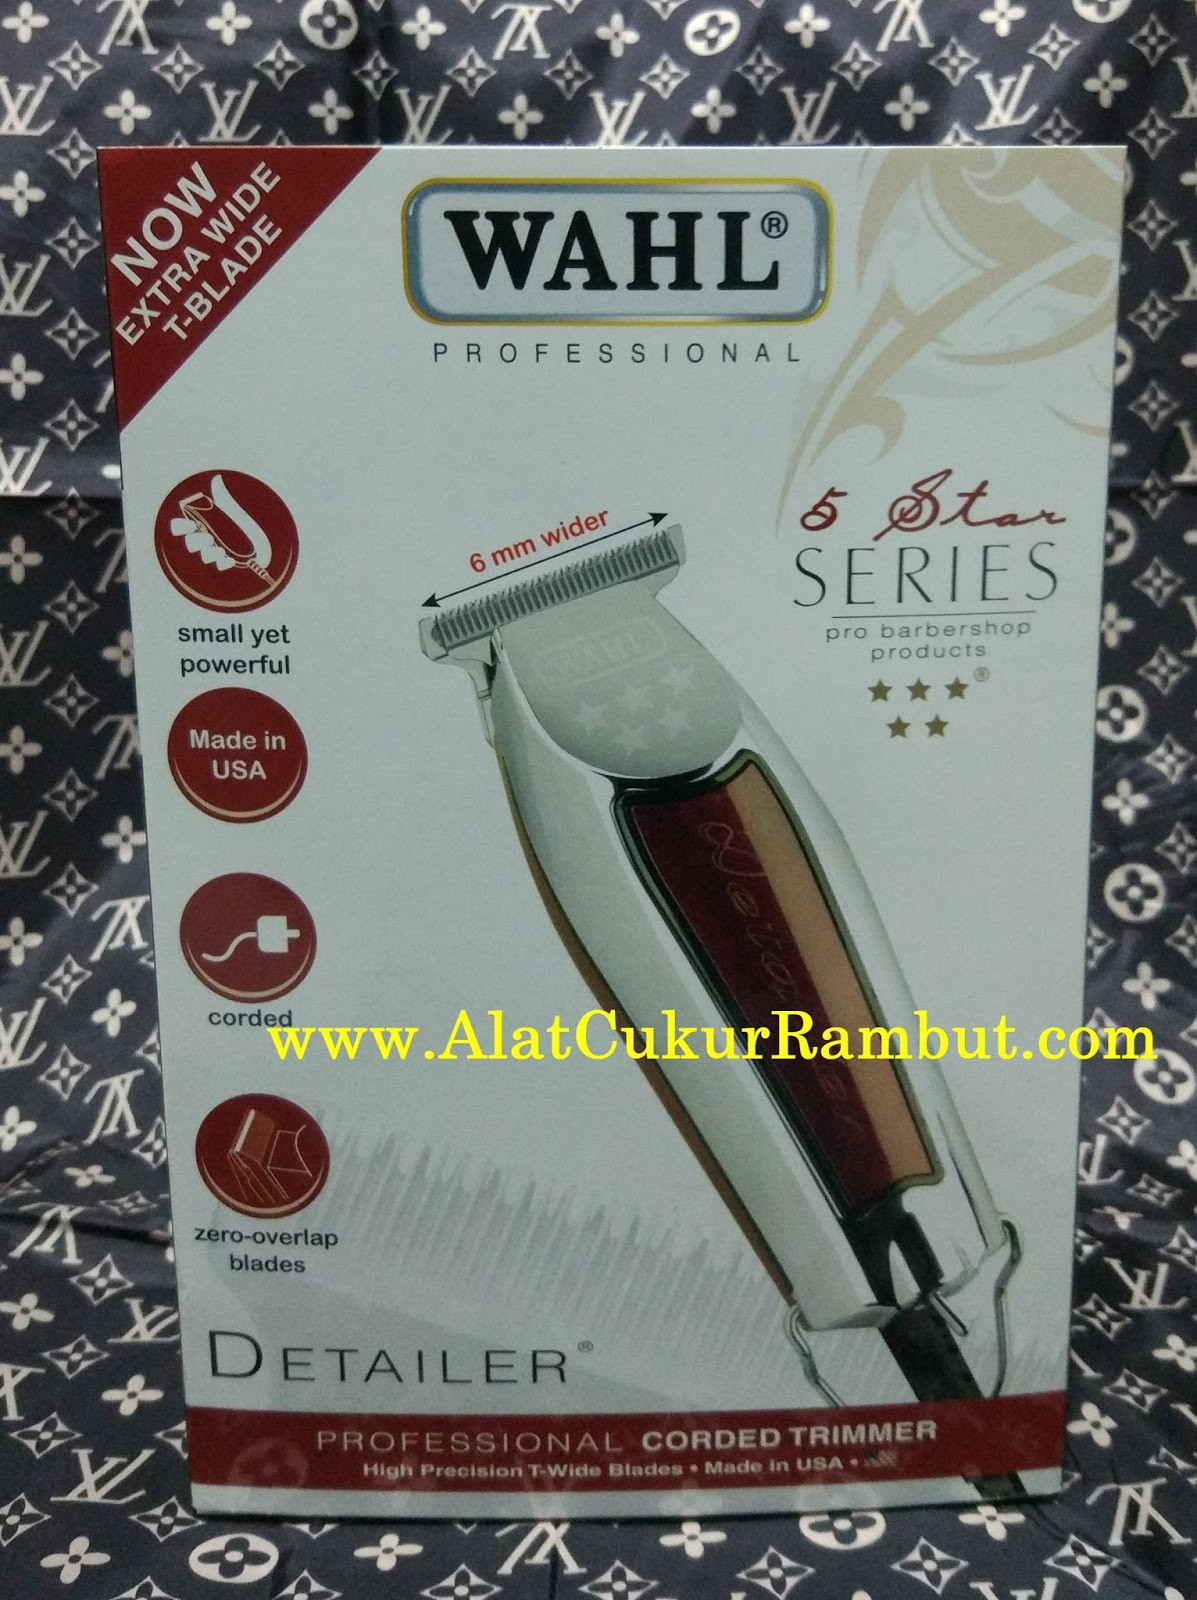 Jual Hair Trimmer   Alat Cukur Rambut Wahl Detailer Original Made In ... bd5fa928b5